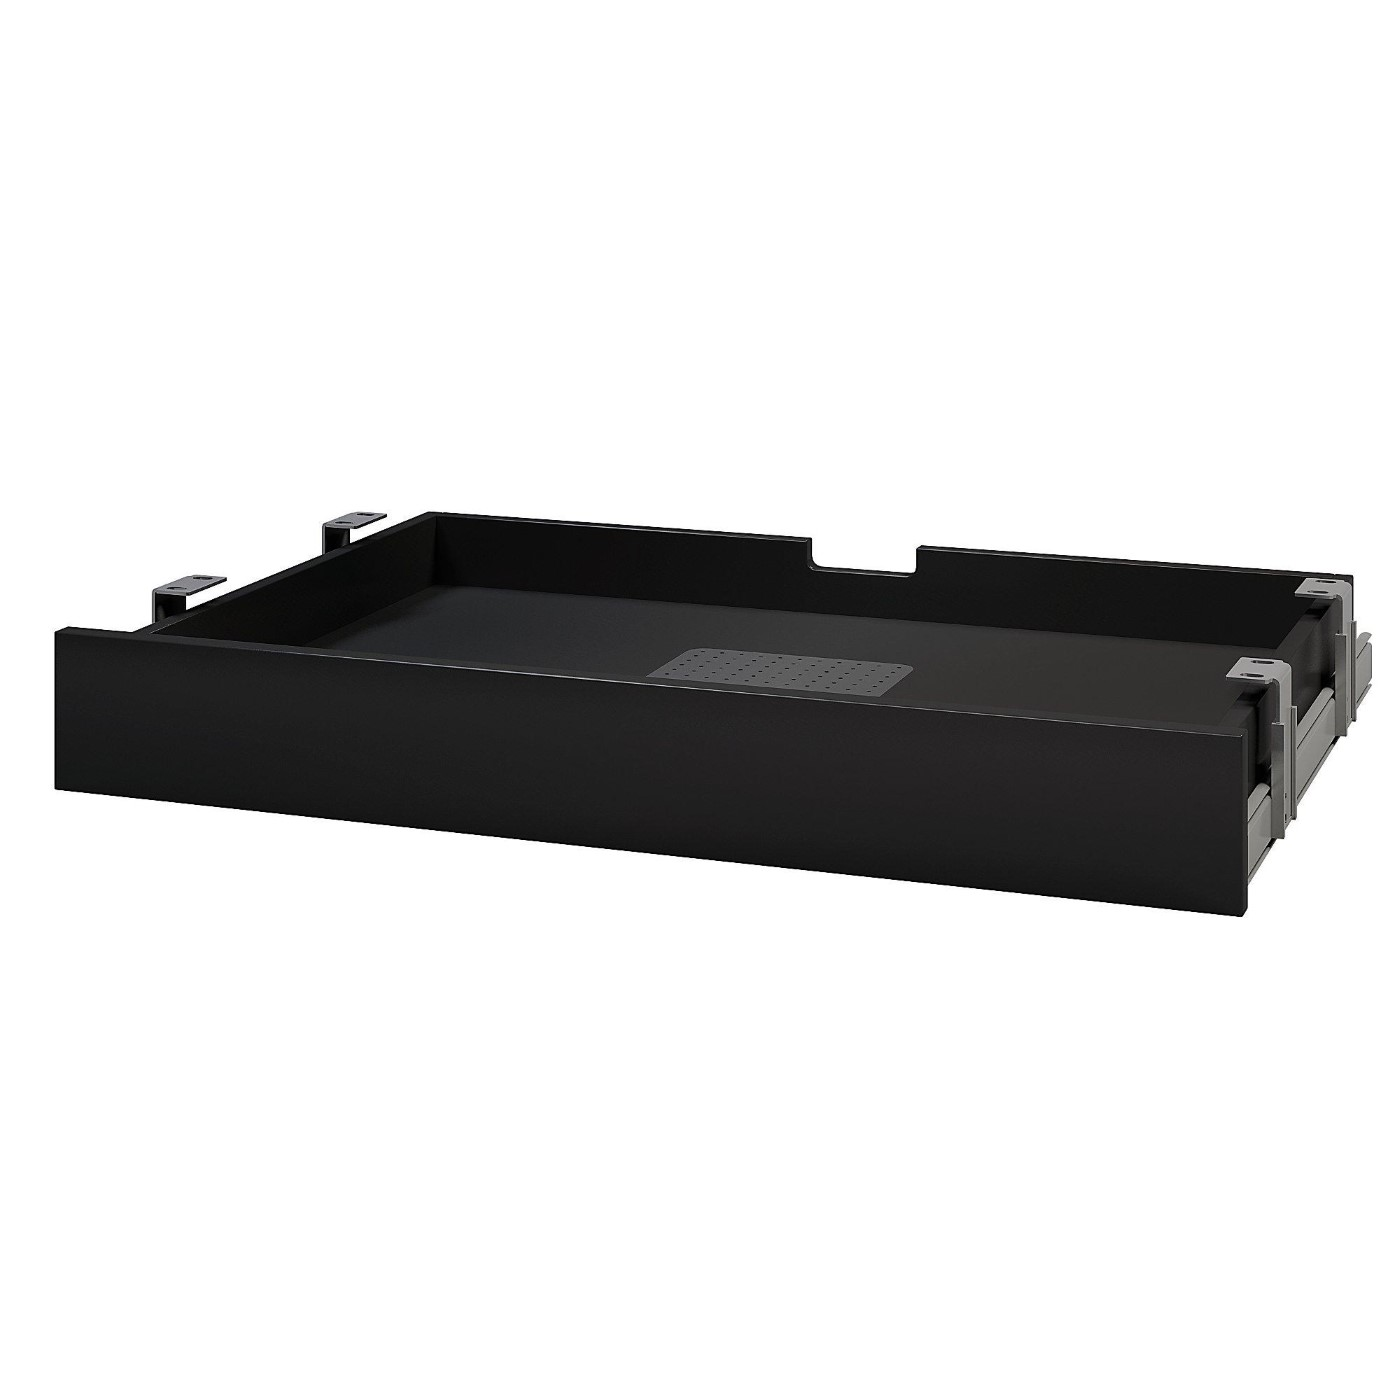 <font color=#c60><b>BUSH BUSINESS FURNITURE MULTI-PURPOSE DRAWER WITH DROP FRONT. FREE SHIPPING</font></b></font></b>